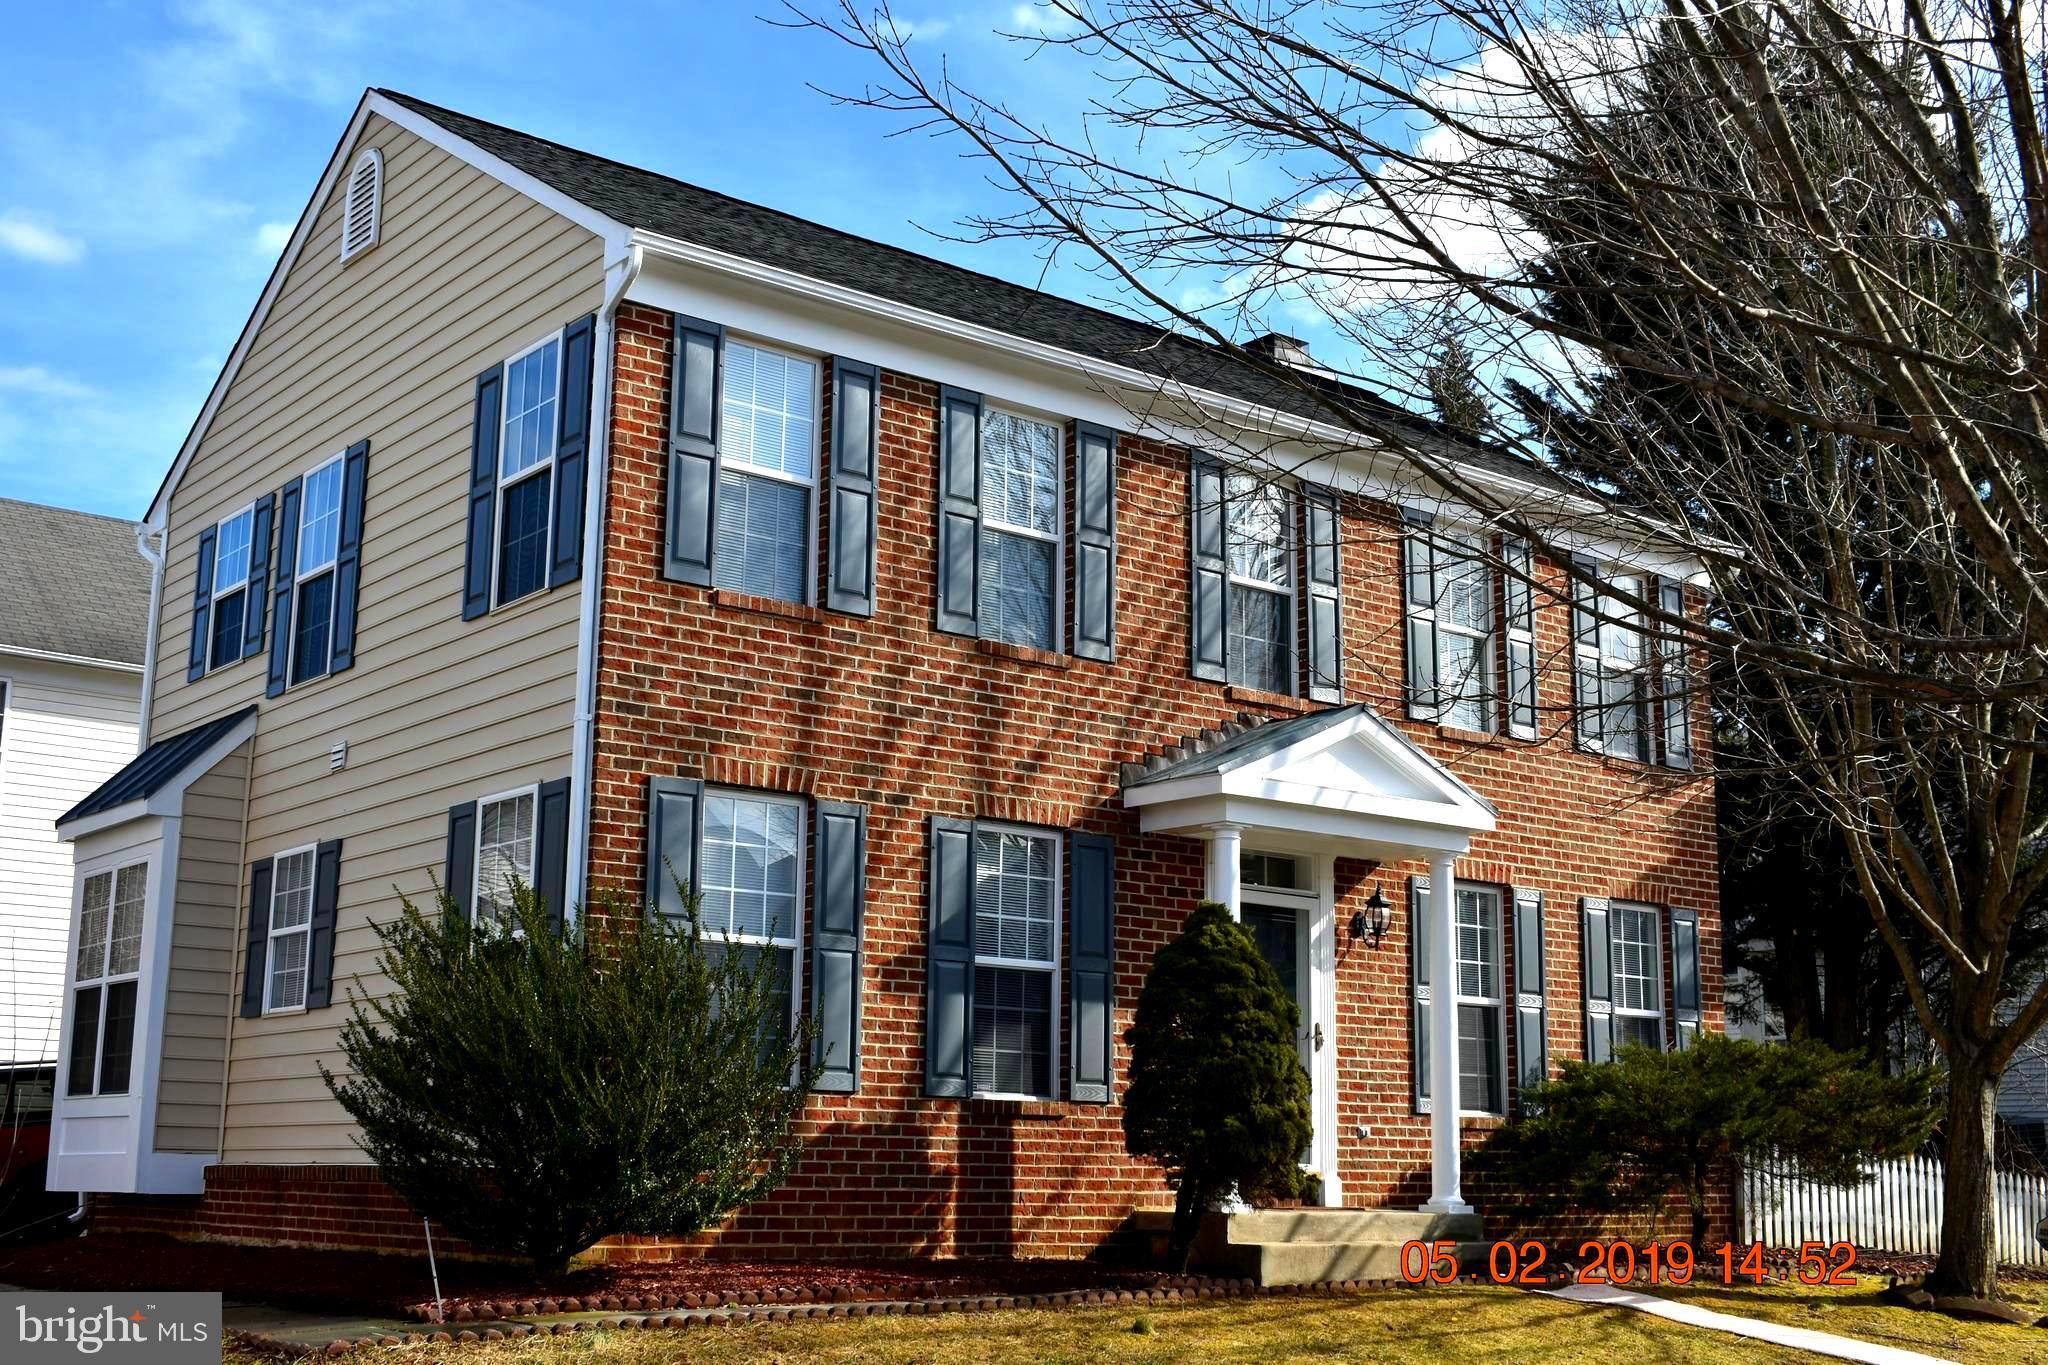 9606 SWALLOW POINT WAY, MONTGOMERY VILLAGE, MD 20879